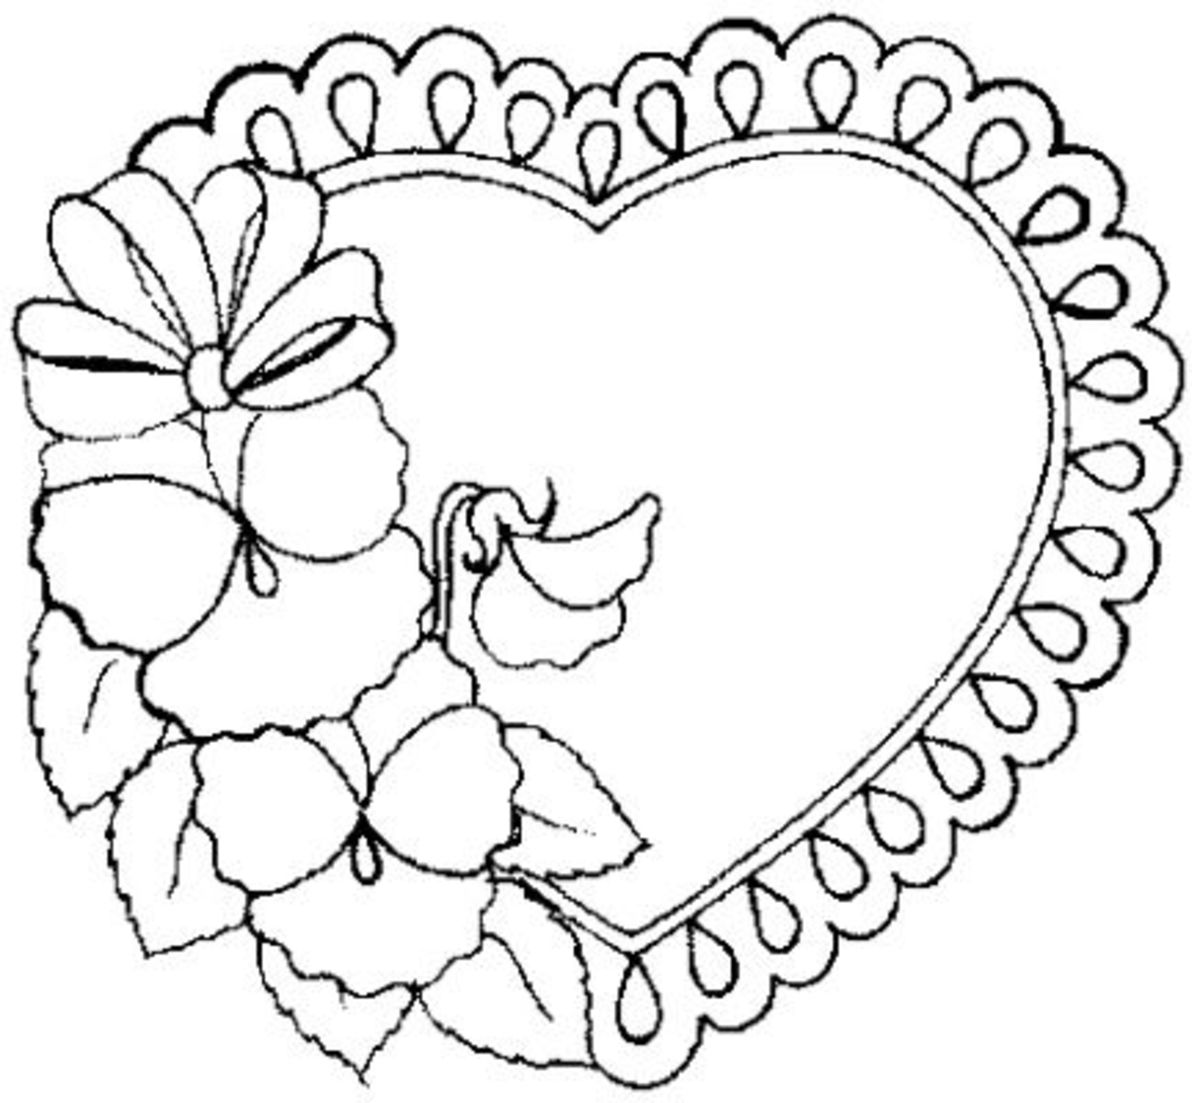 Best Free Valentine Coloring Pages, Quotes, Clip Art And ...